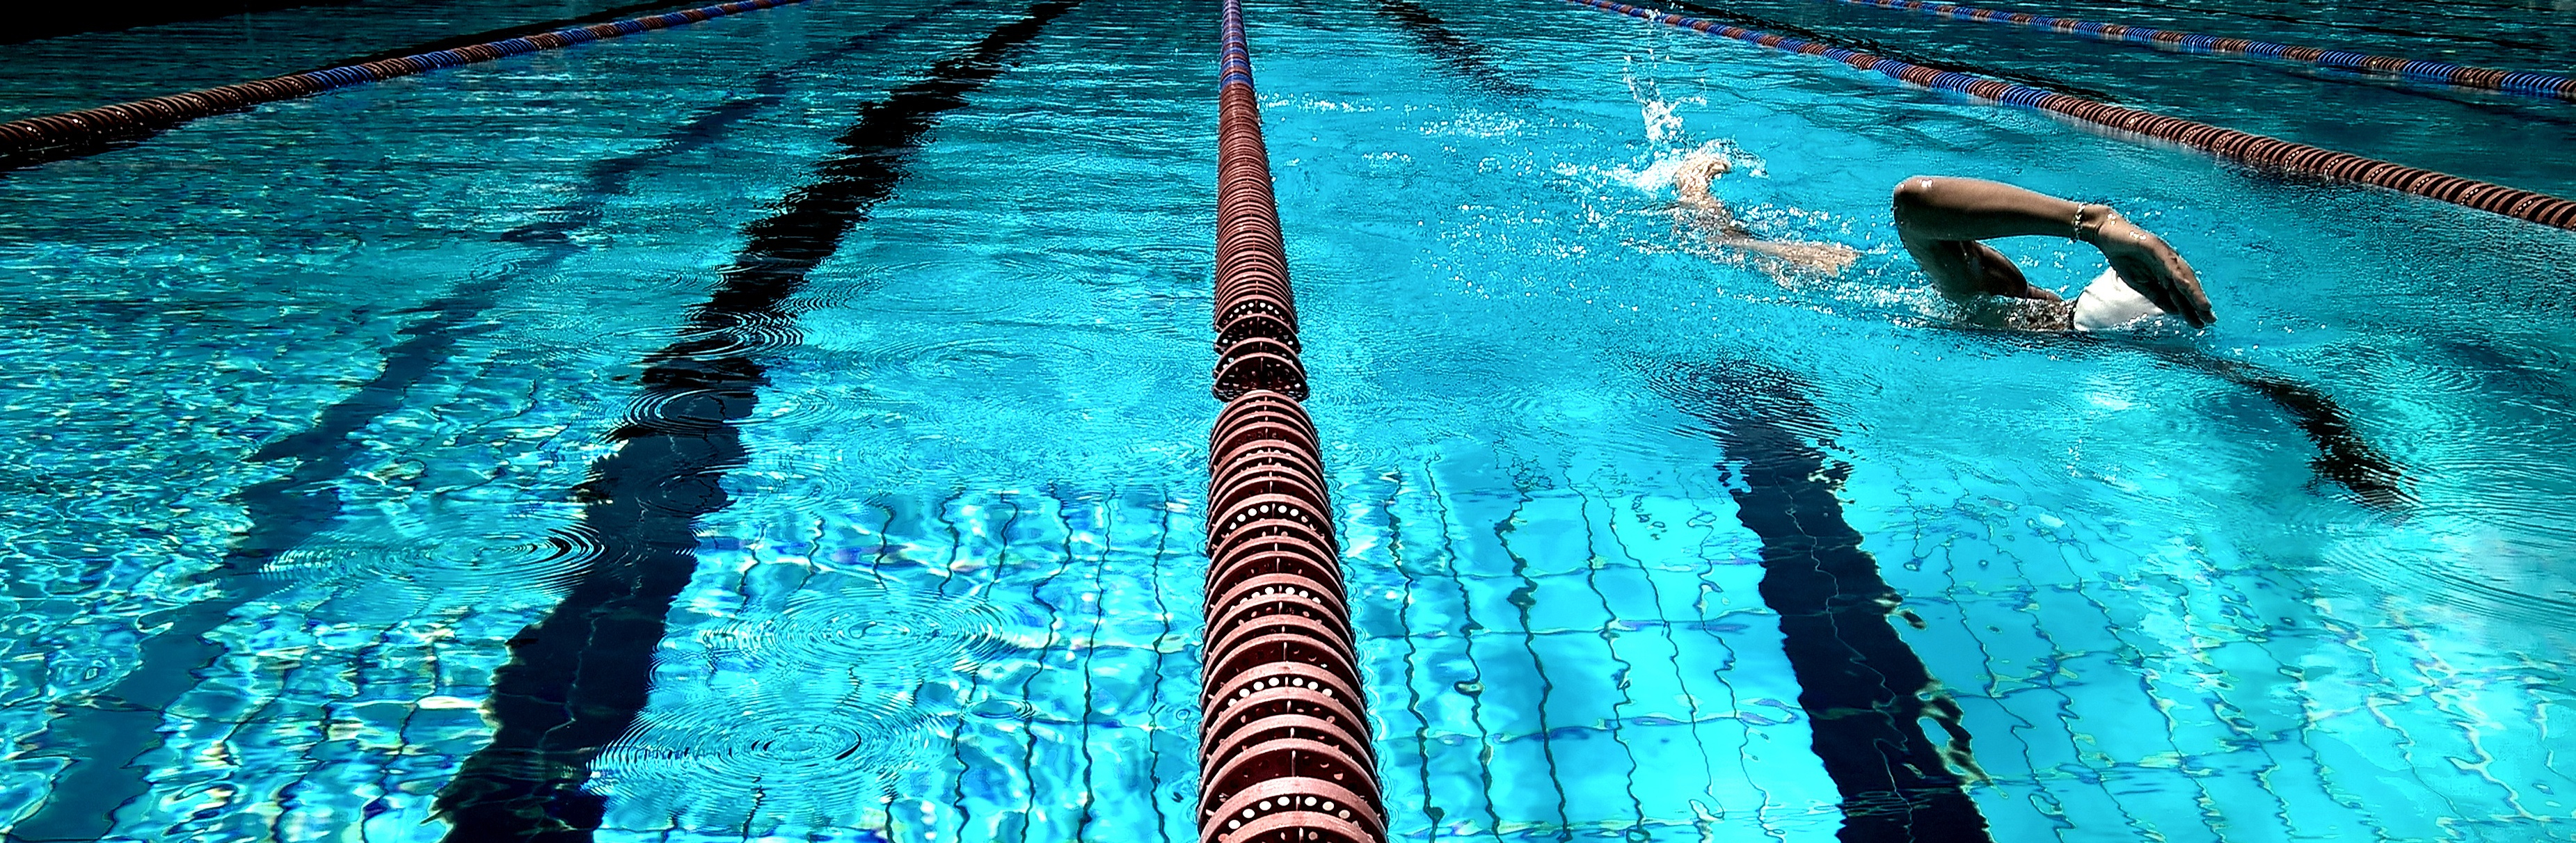 Canva%20-%20close%20up%20photo%20of%20swimming%20rope%20%281%29